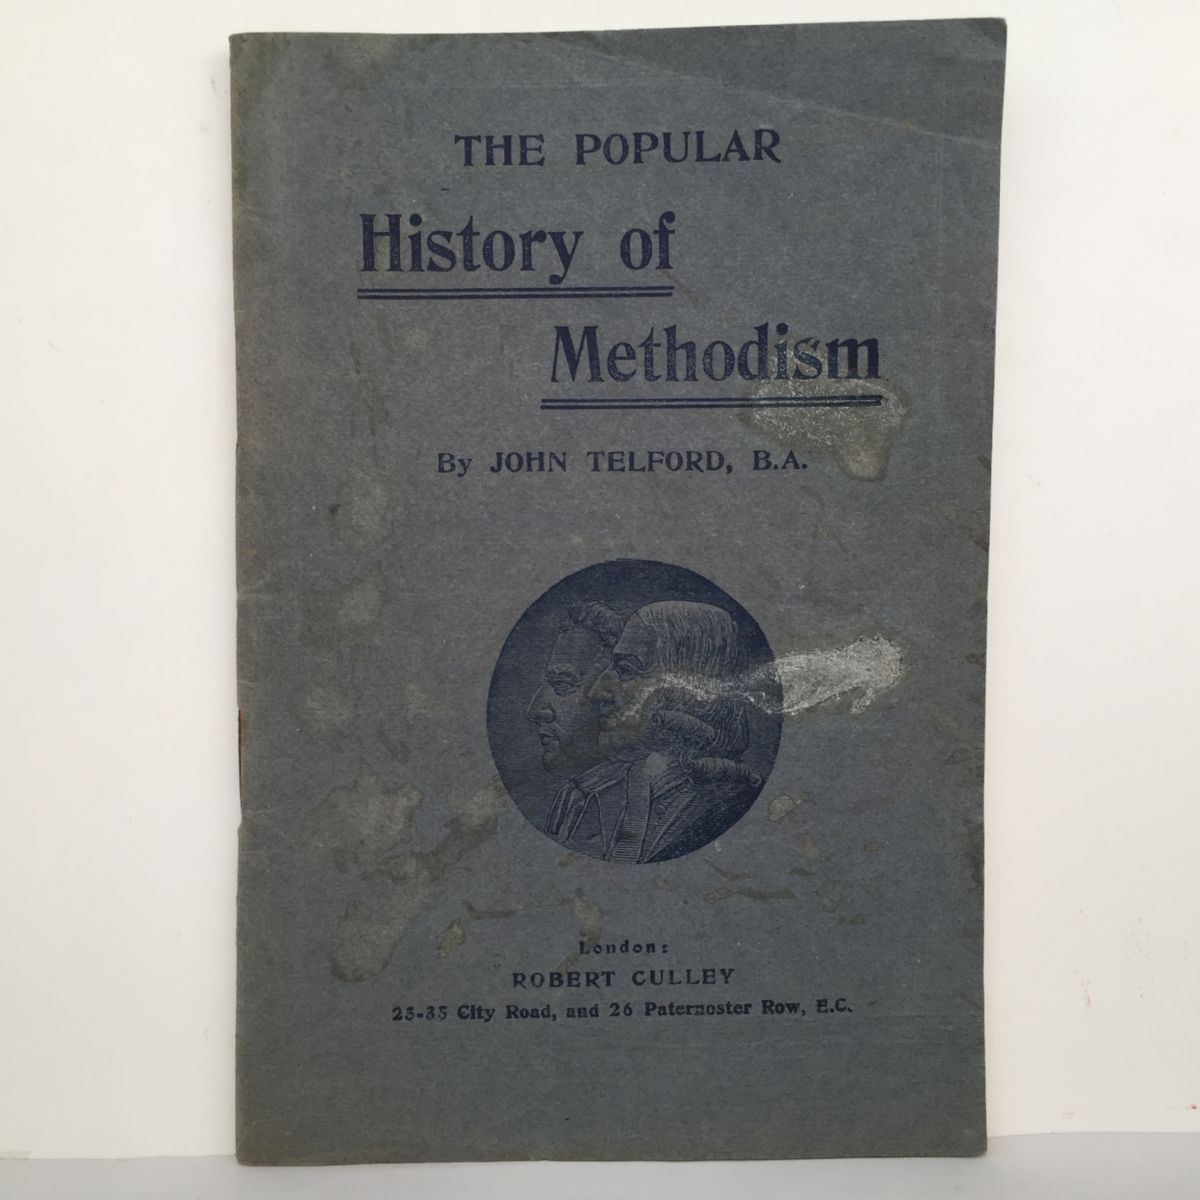 The Popular History of Methodism